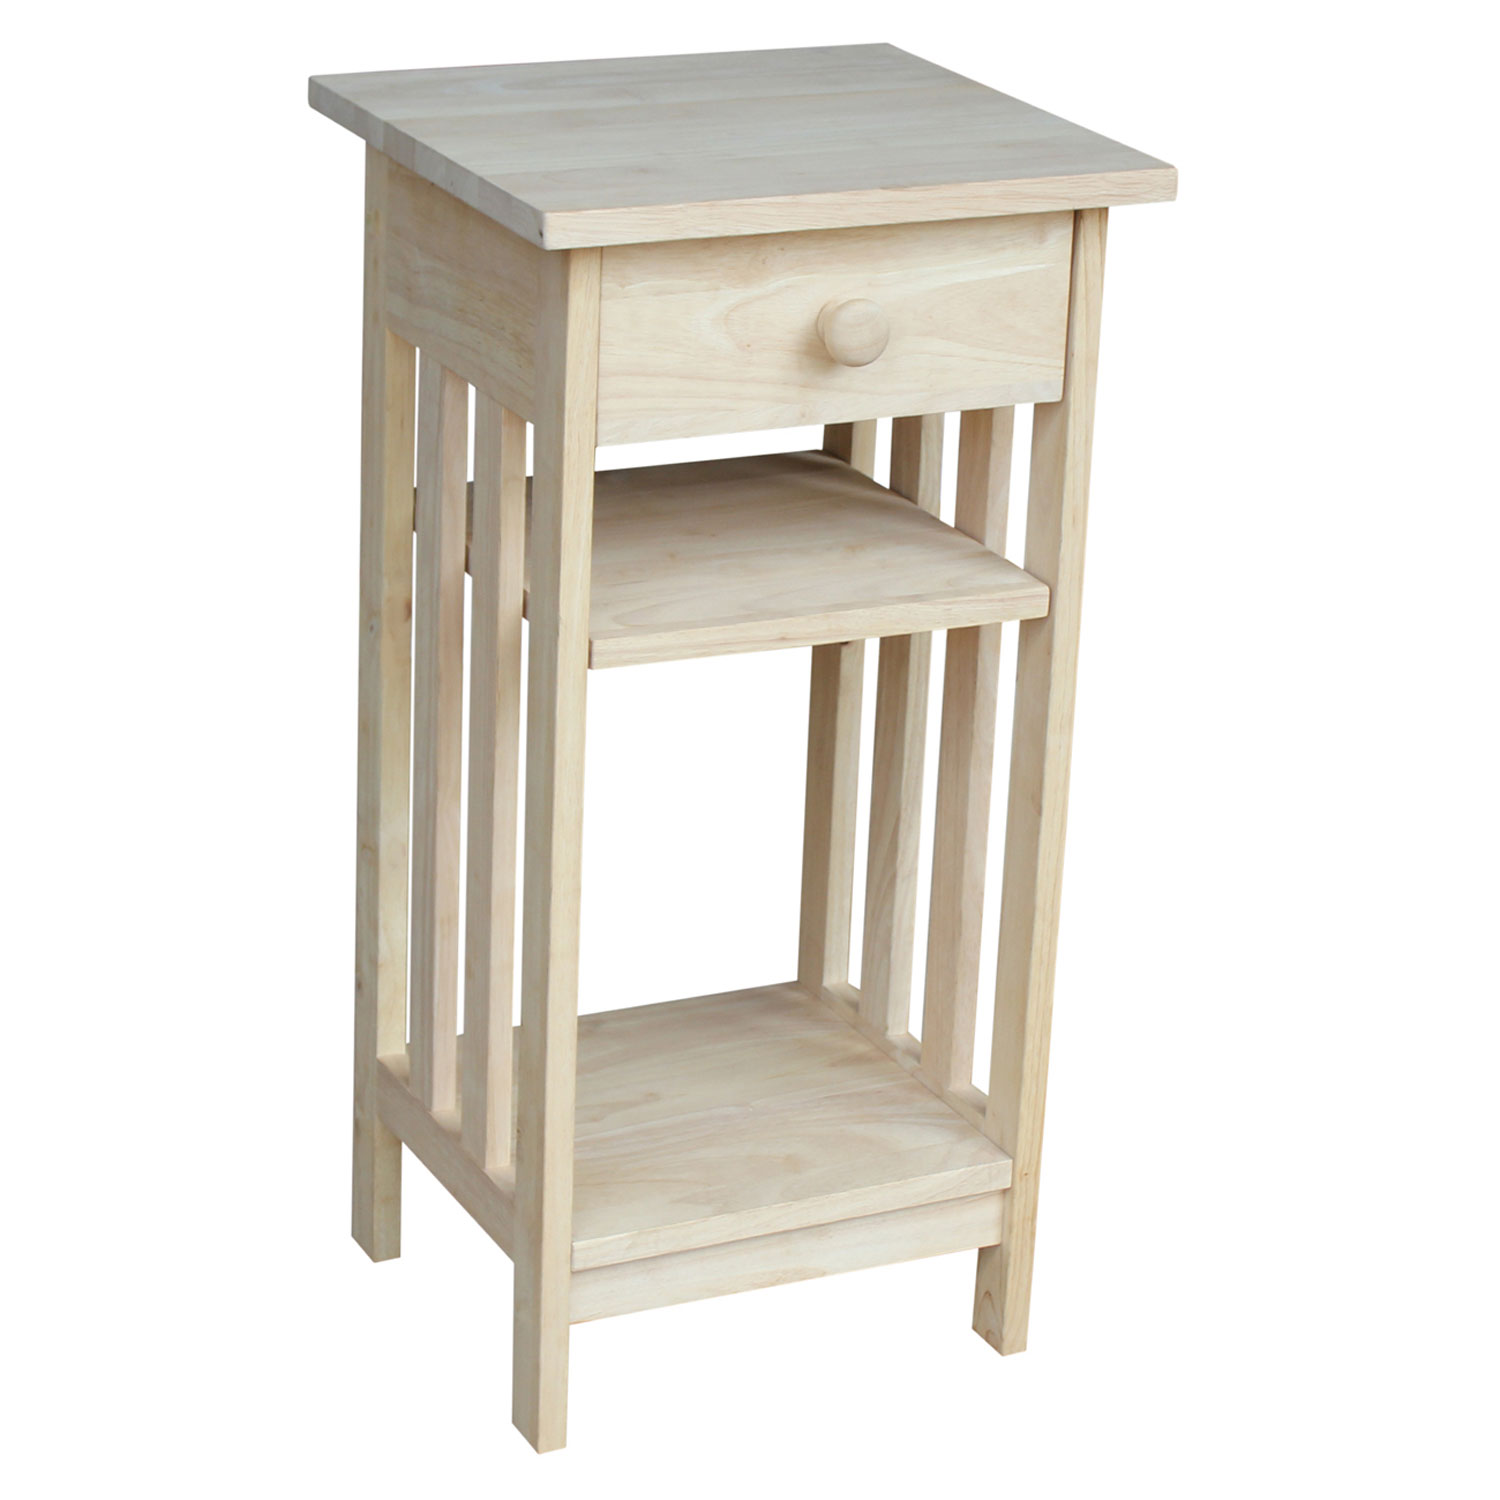 international concepts mission unfinished wood telephone stand with accent table hover zoom small counter height sets folding tray clear lucite end tables shallow hall cupboard